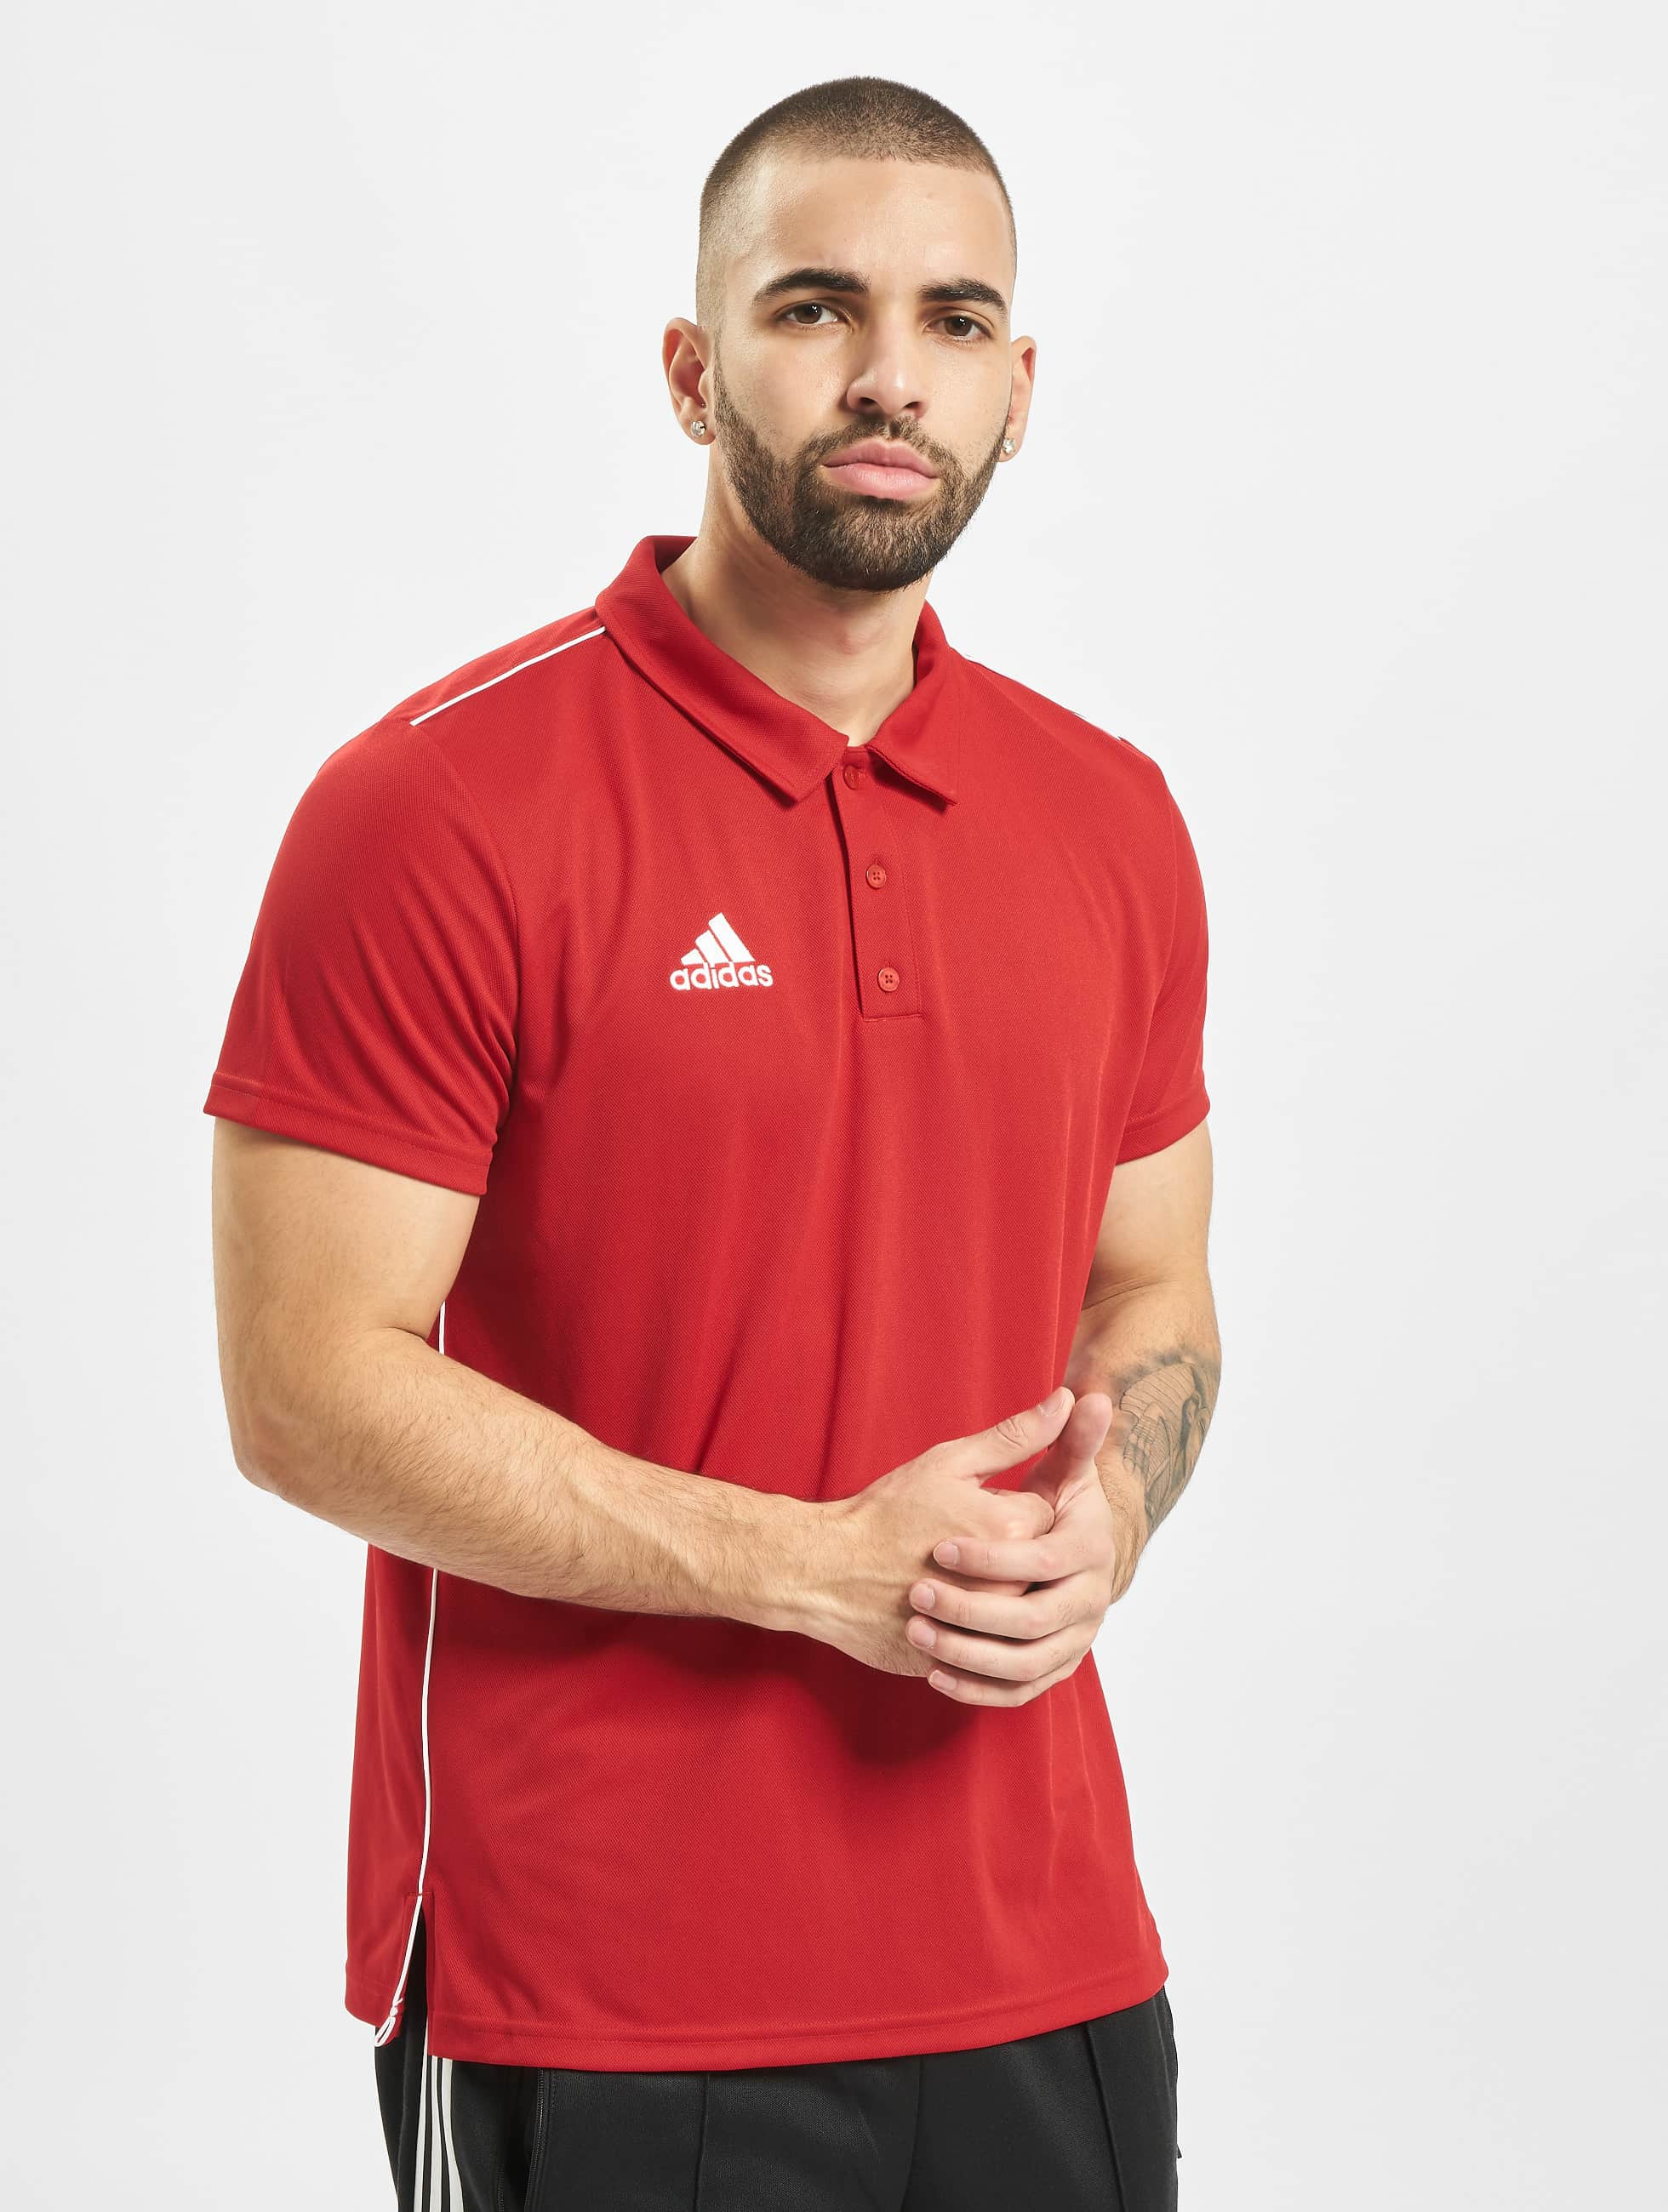 adidas Core 18 ClimaLite Poloshirt Red